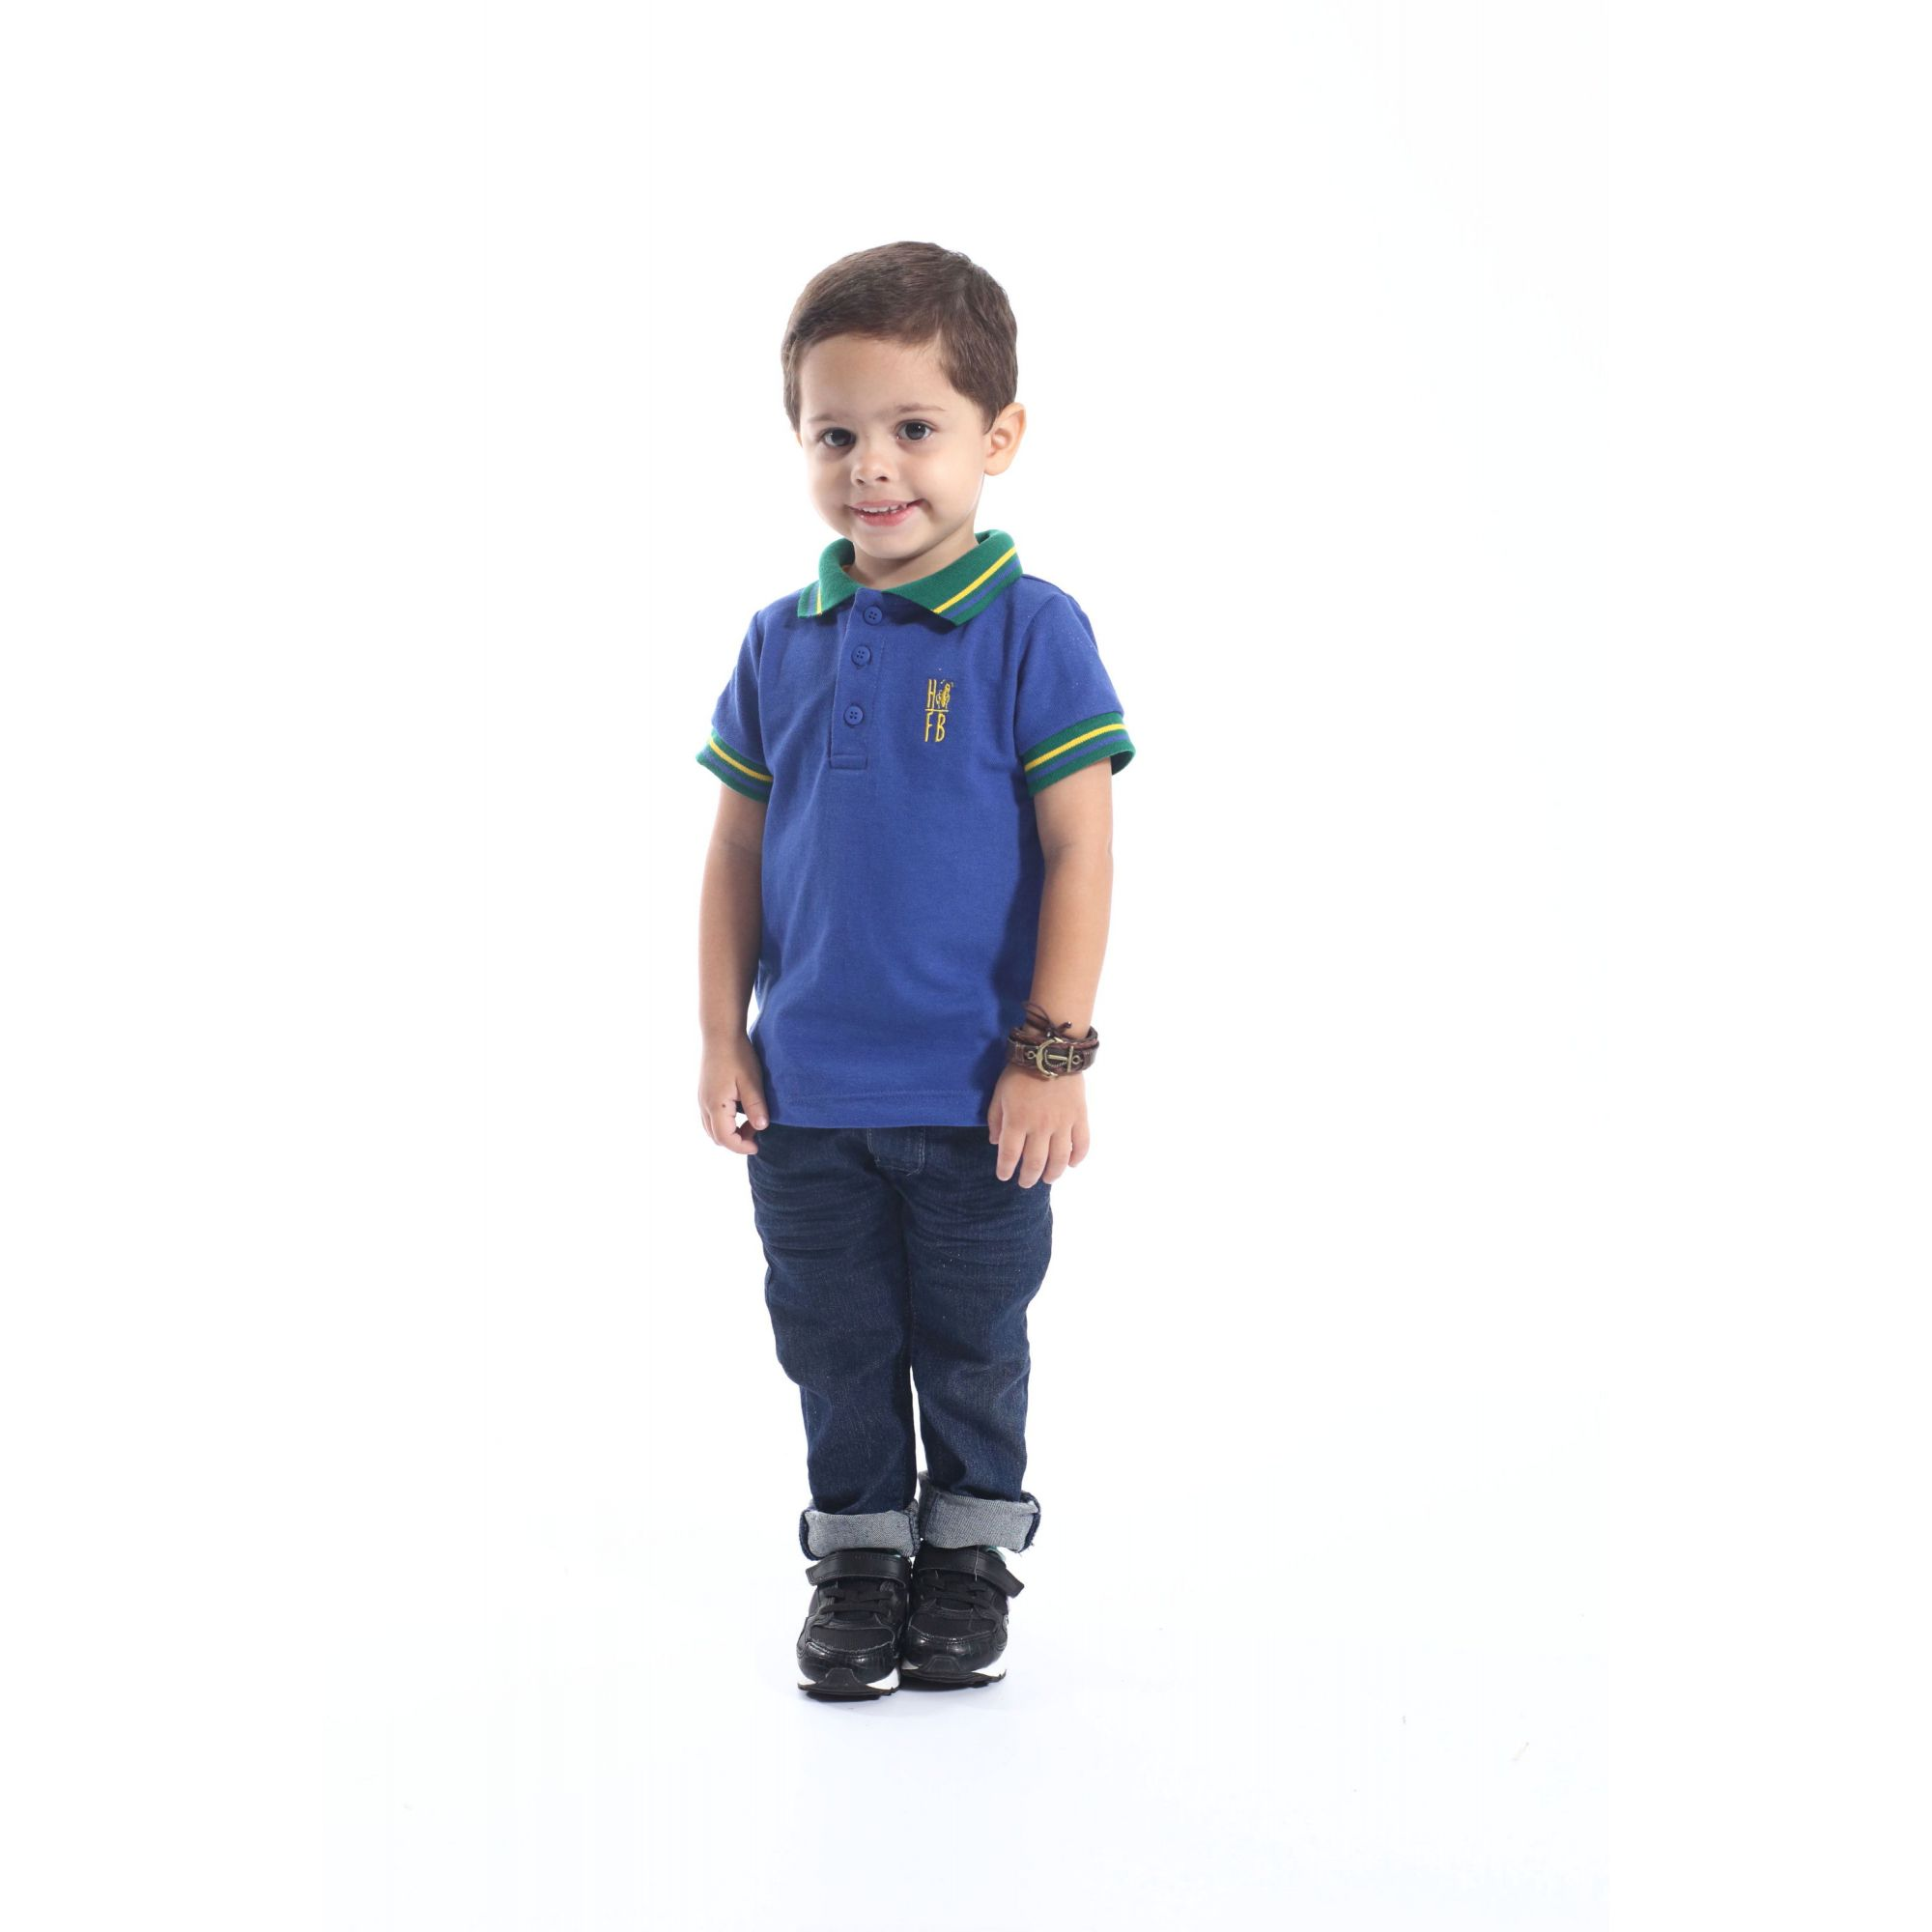 Camisa Polo Infantil Azul Royal  - Heitor Fashion Brazil